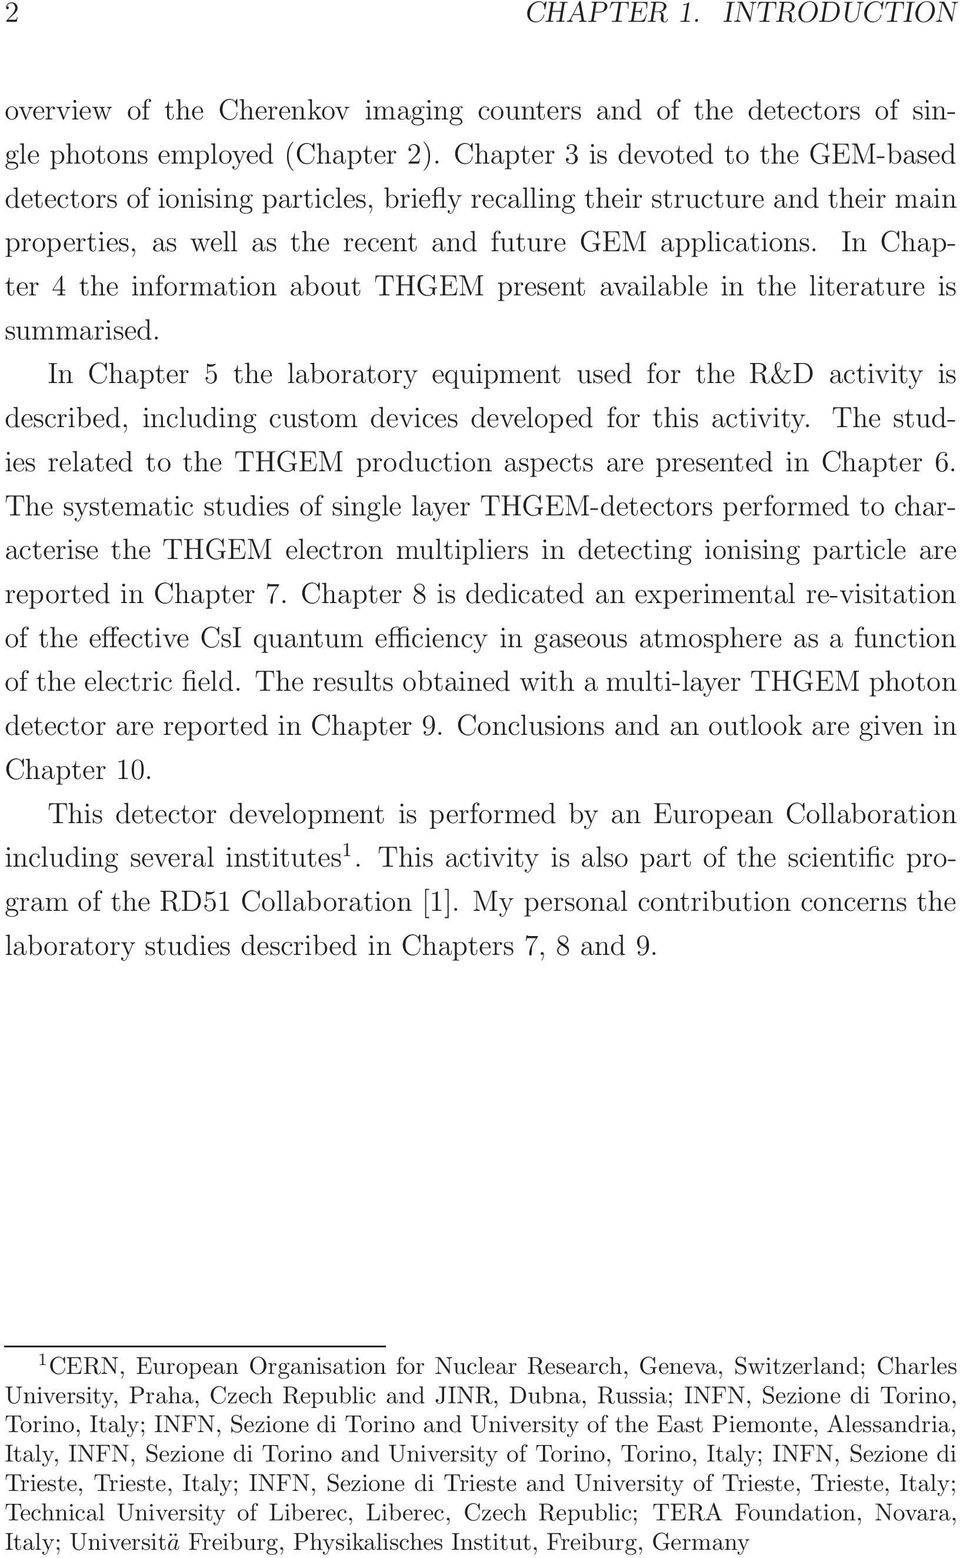 In Chapter 4 the information about THGEM present available in the literature is summarised.